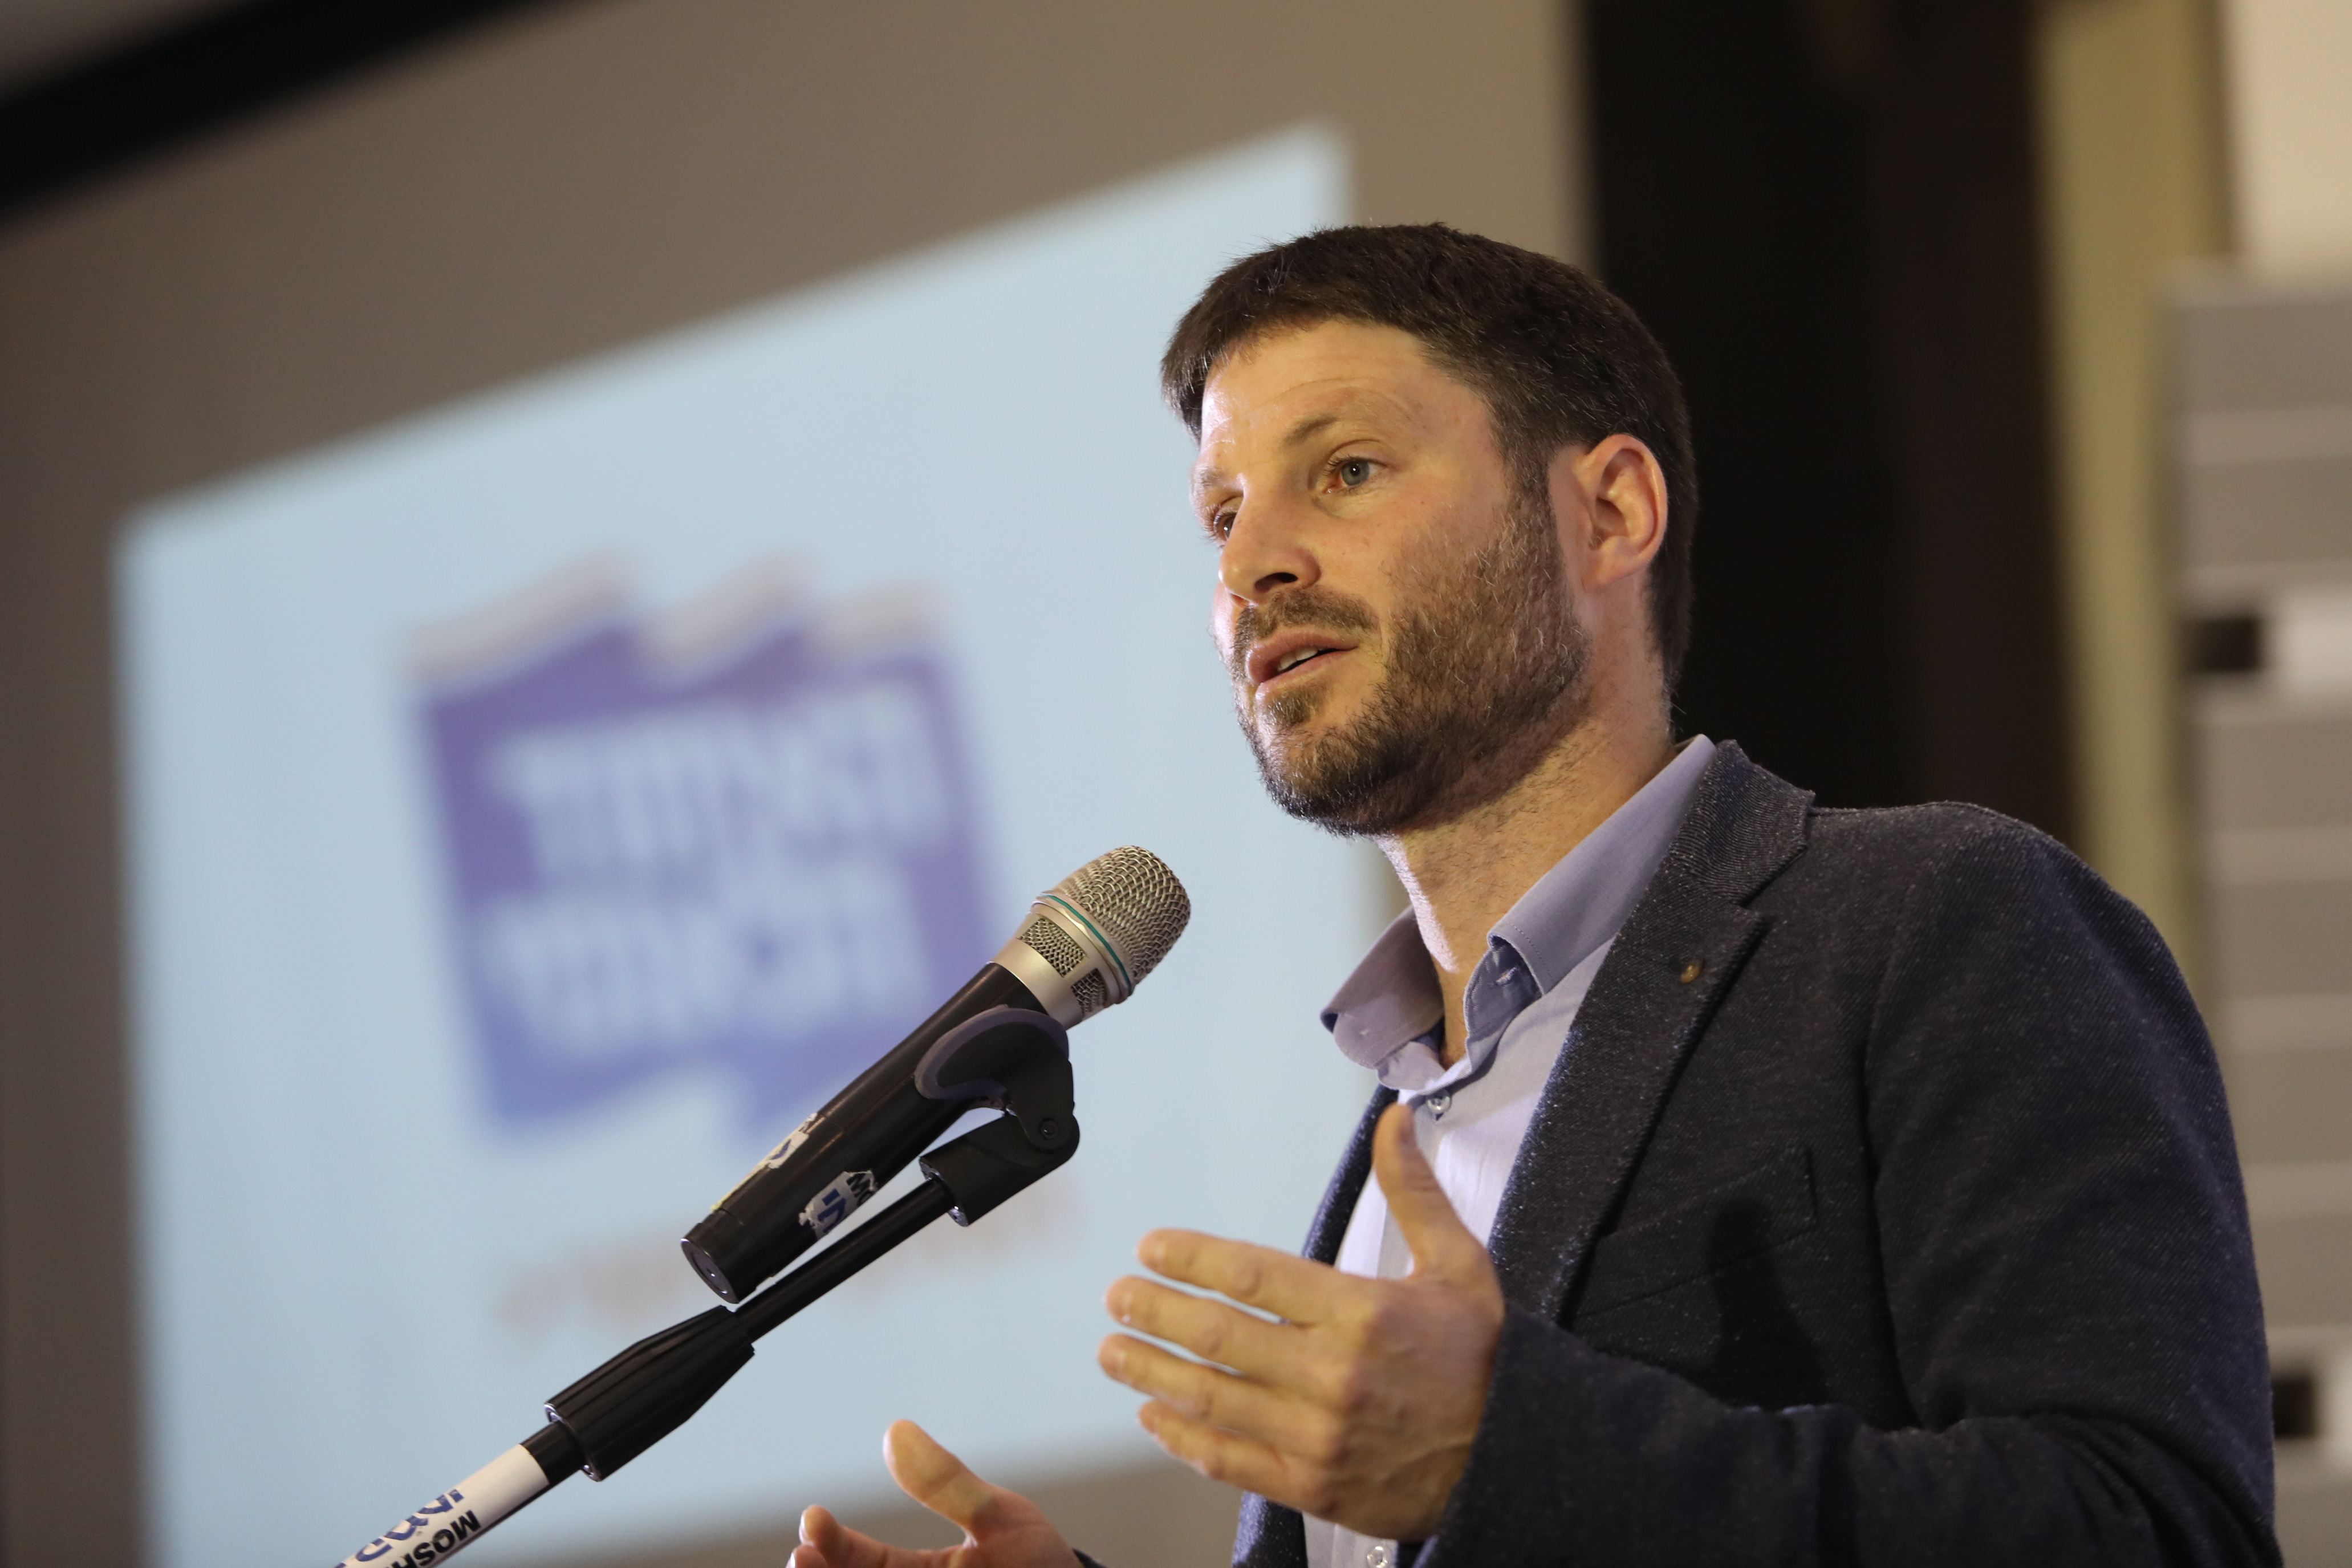 FILE - Jewish Home parliament member Bezalel Smotrich speaks during a conference of the National Union Political party in Jerusalem on March 6, 2018. Photo by Yonatan Sindel/Flash90